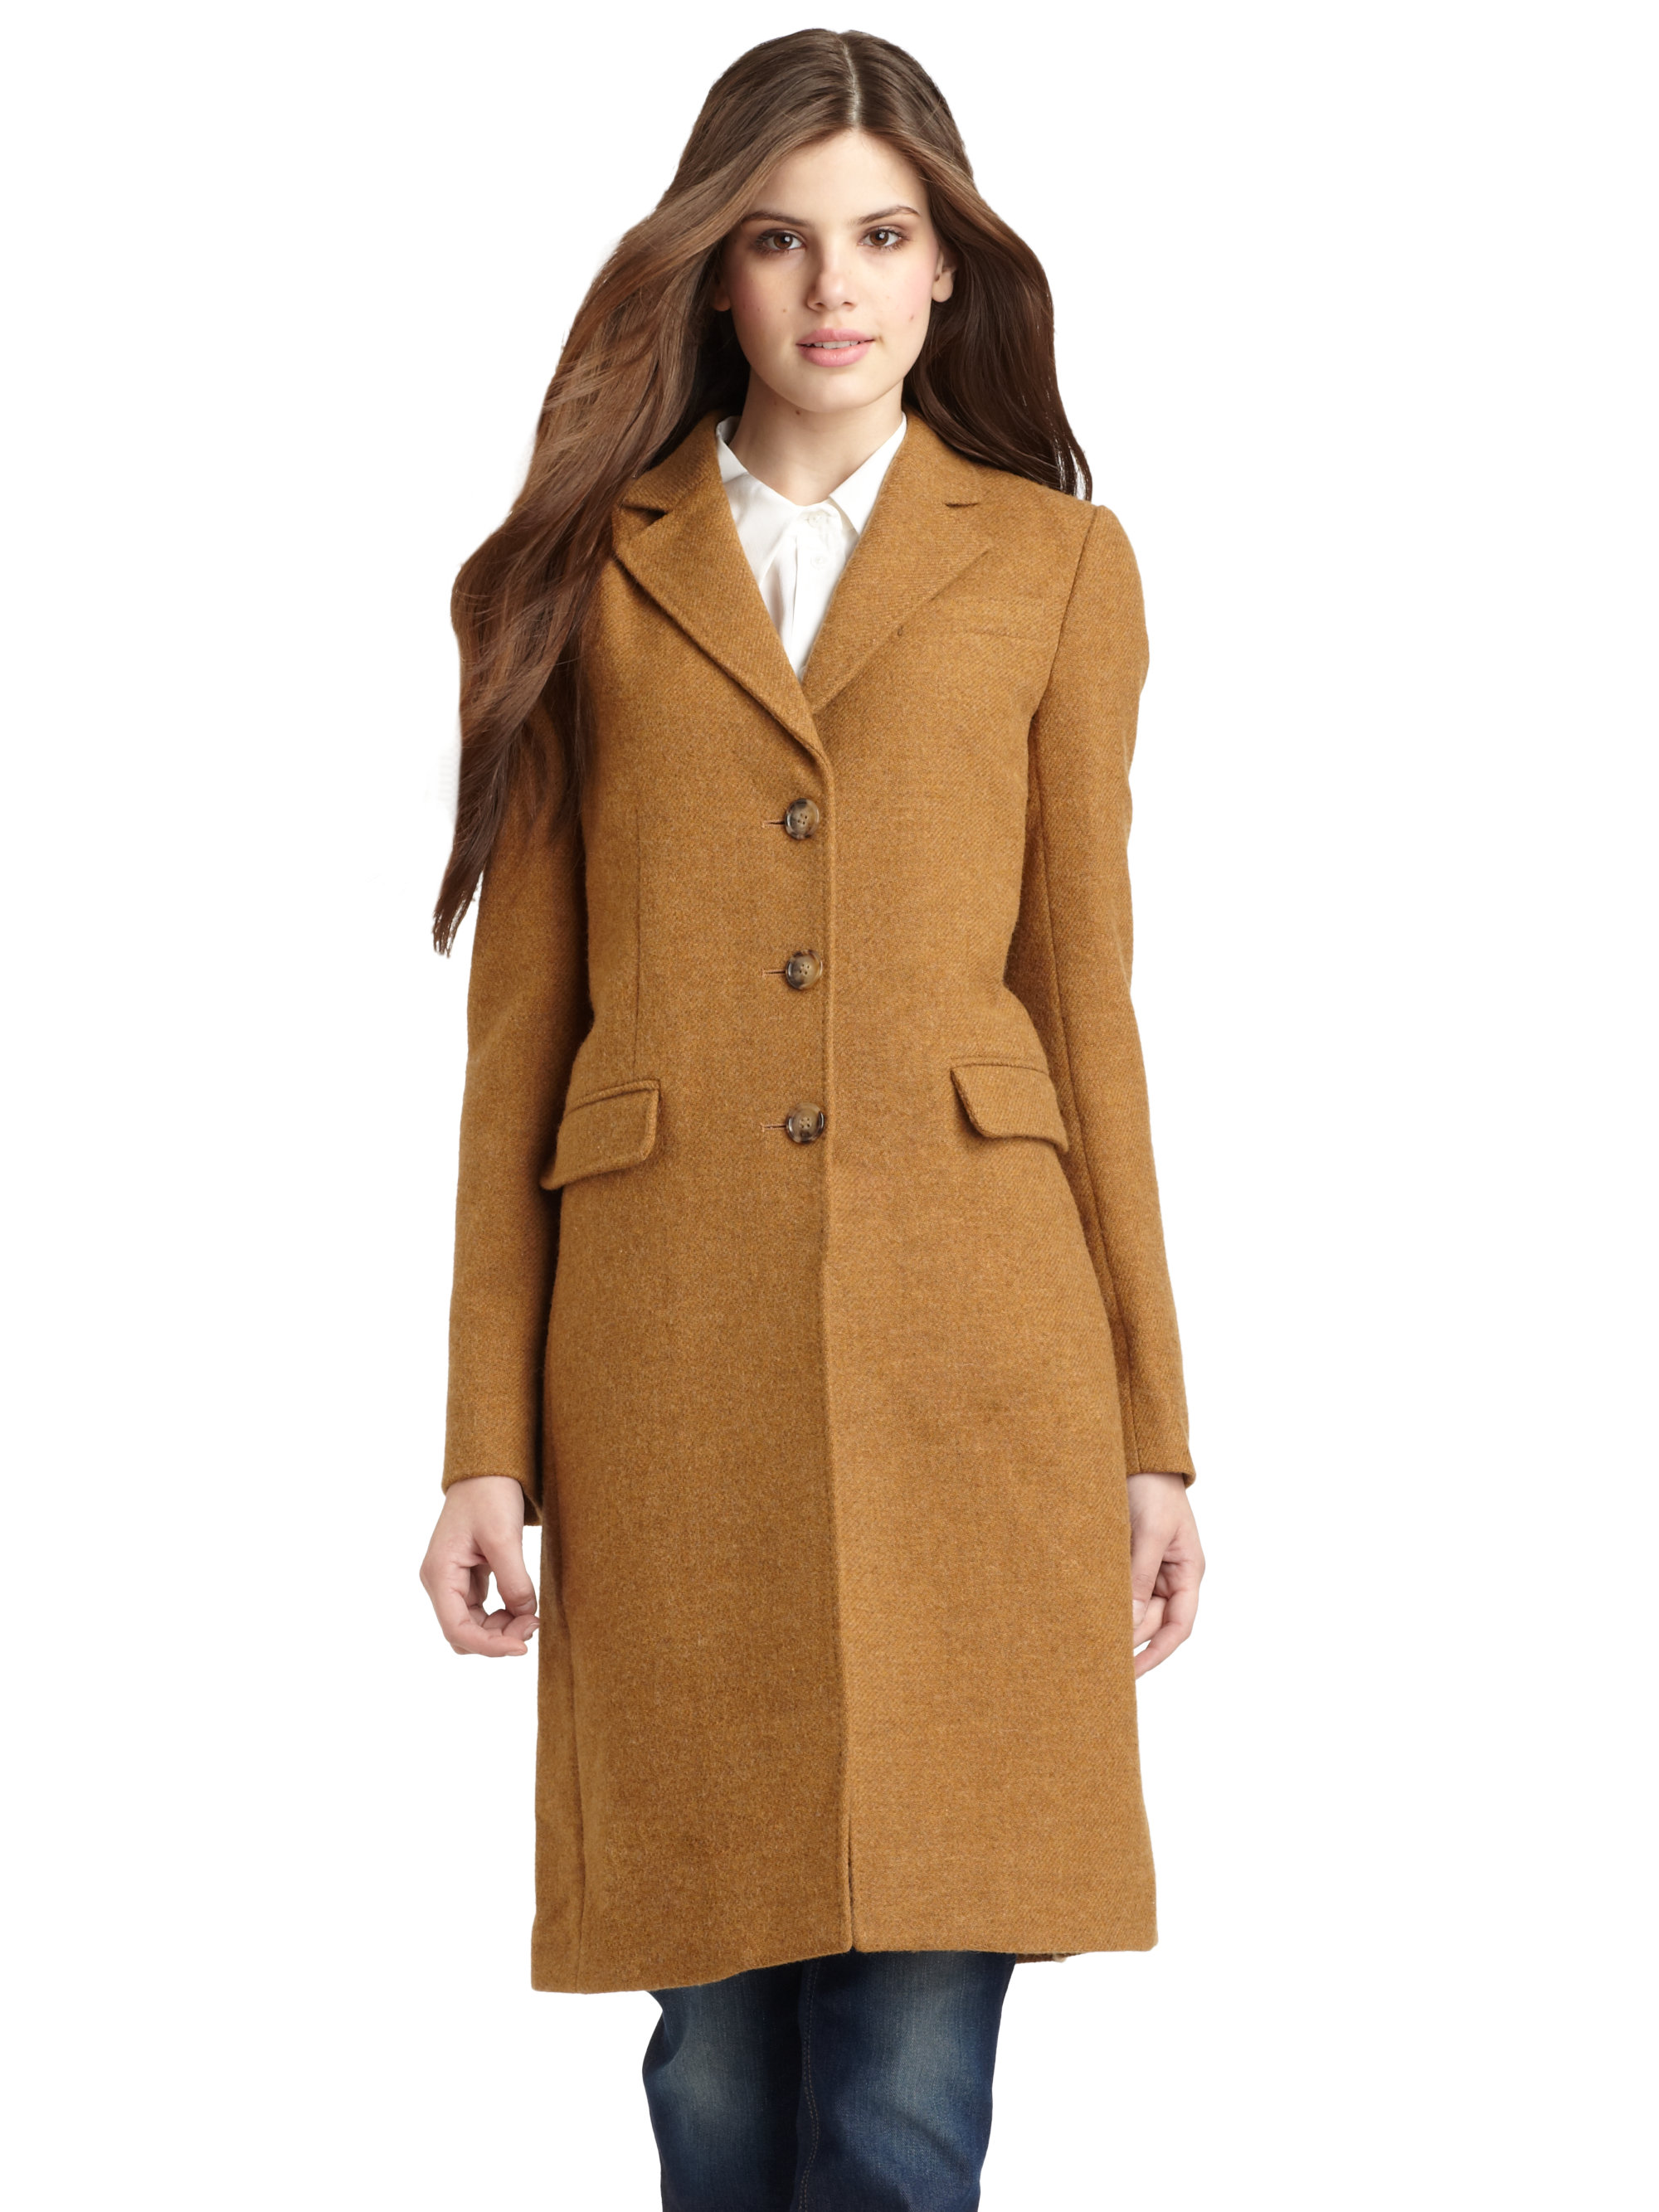 Dolce & gabbana Wool Coat in Natural | Lyst